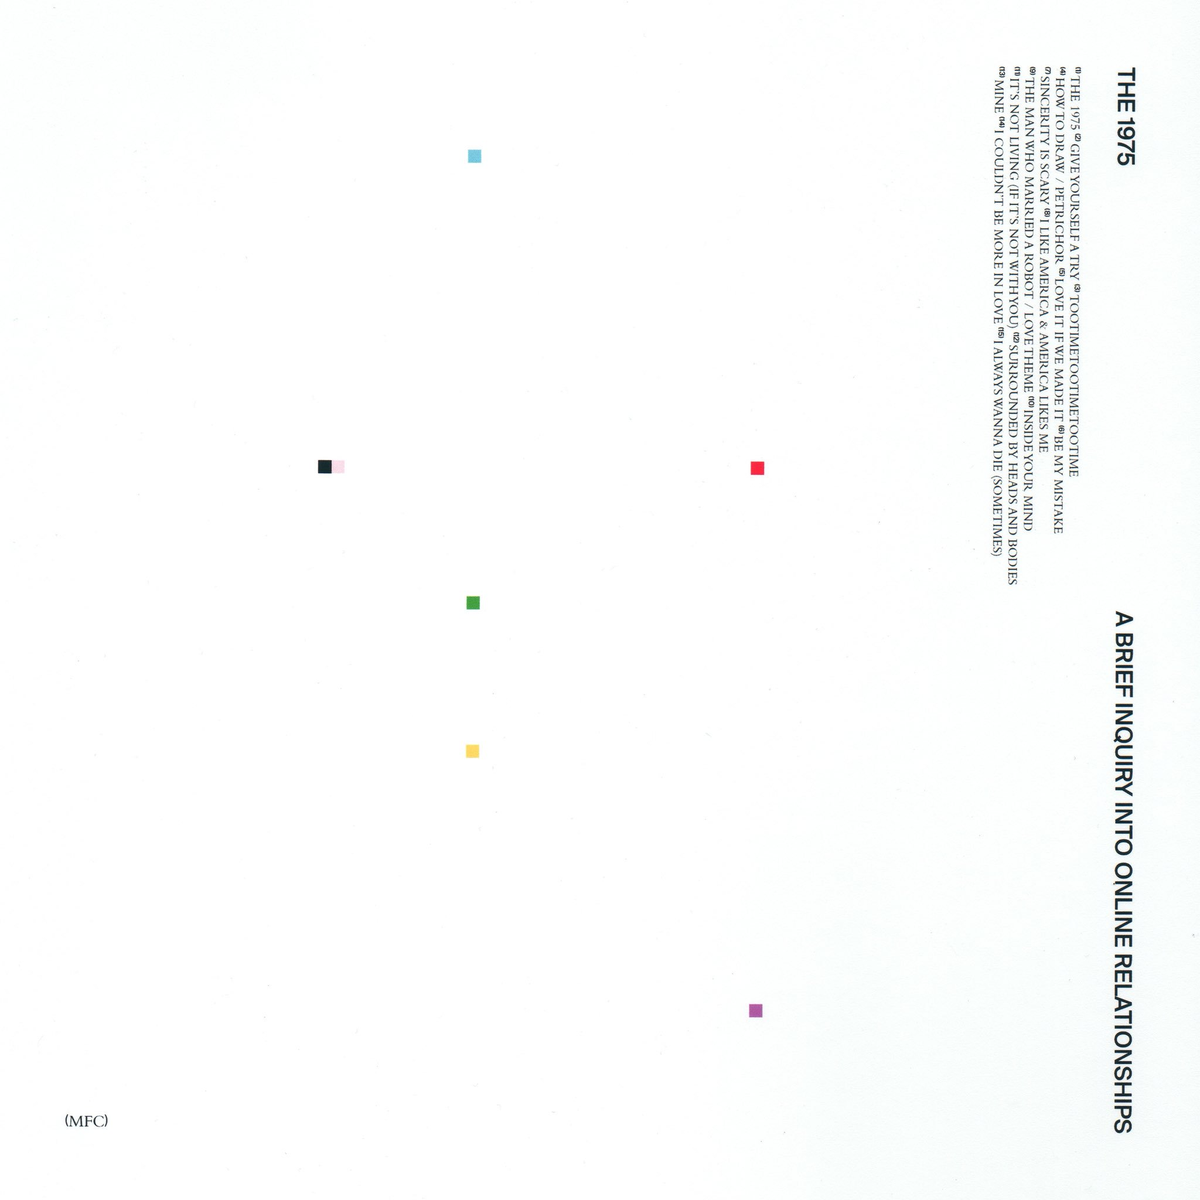 "The album begins with the classic opener that is heard on all of their albums: the self-titled song ""The 1975."" Each version of it sounds slightly different, each one fitting the theme of the album."